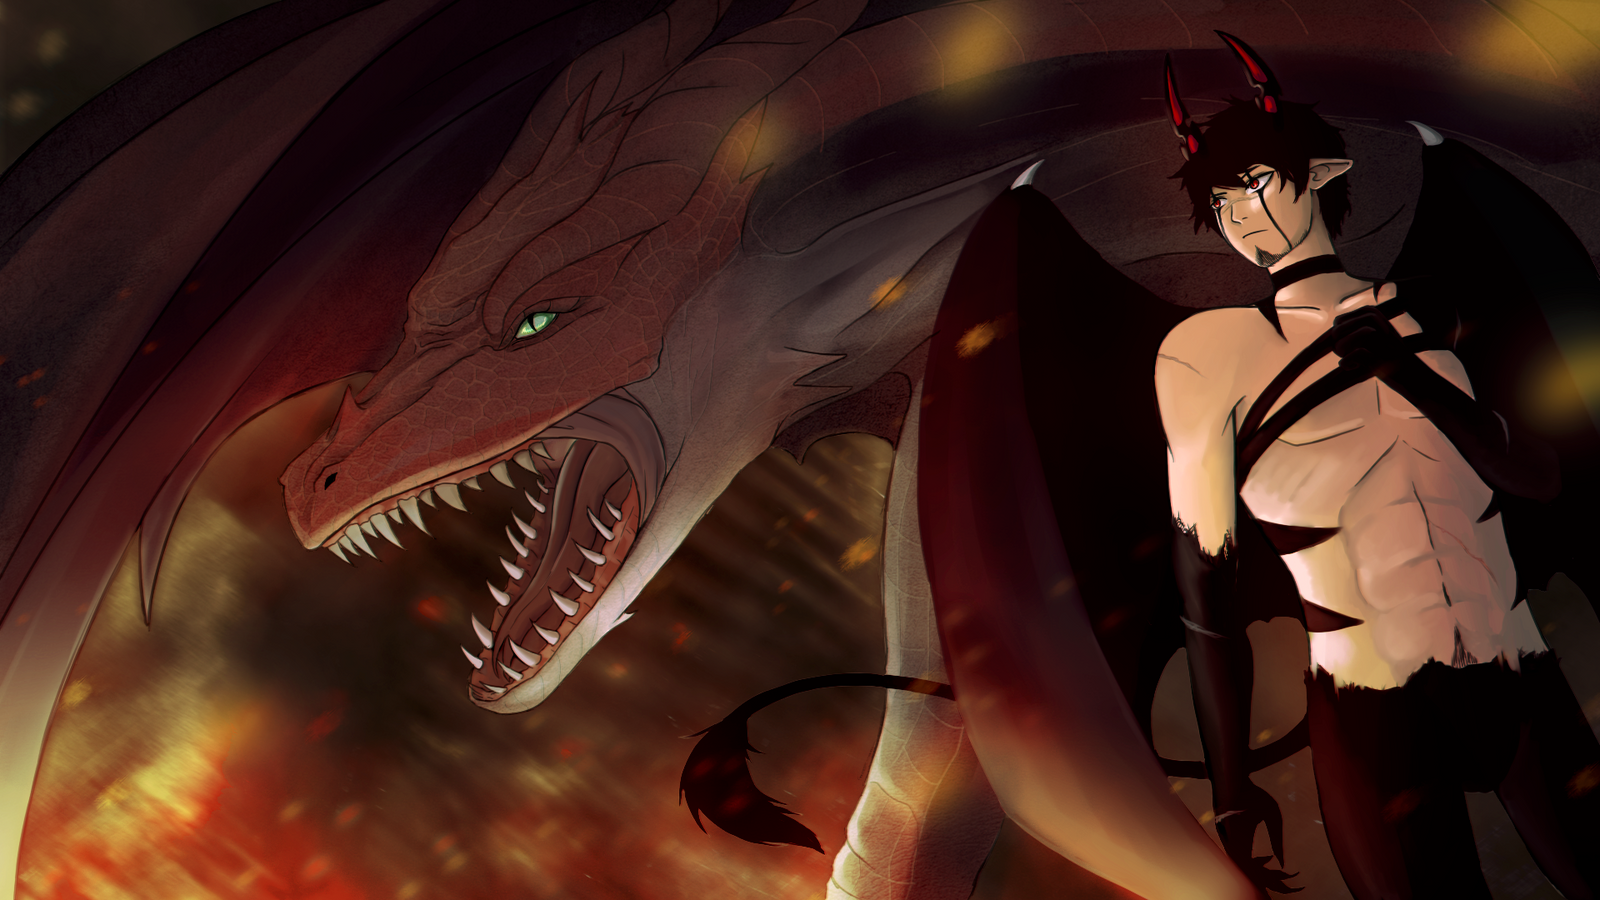 Dragon and Demon by Cessalina on DeviantArt